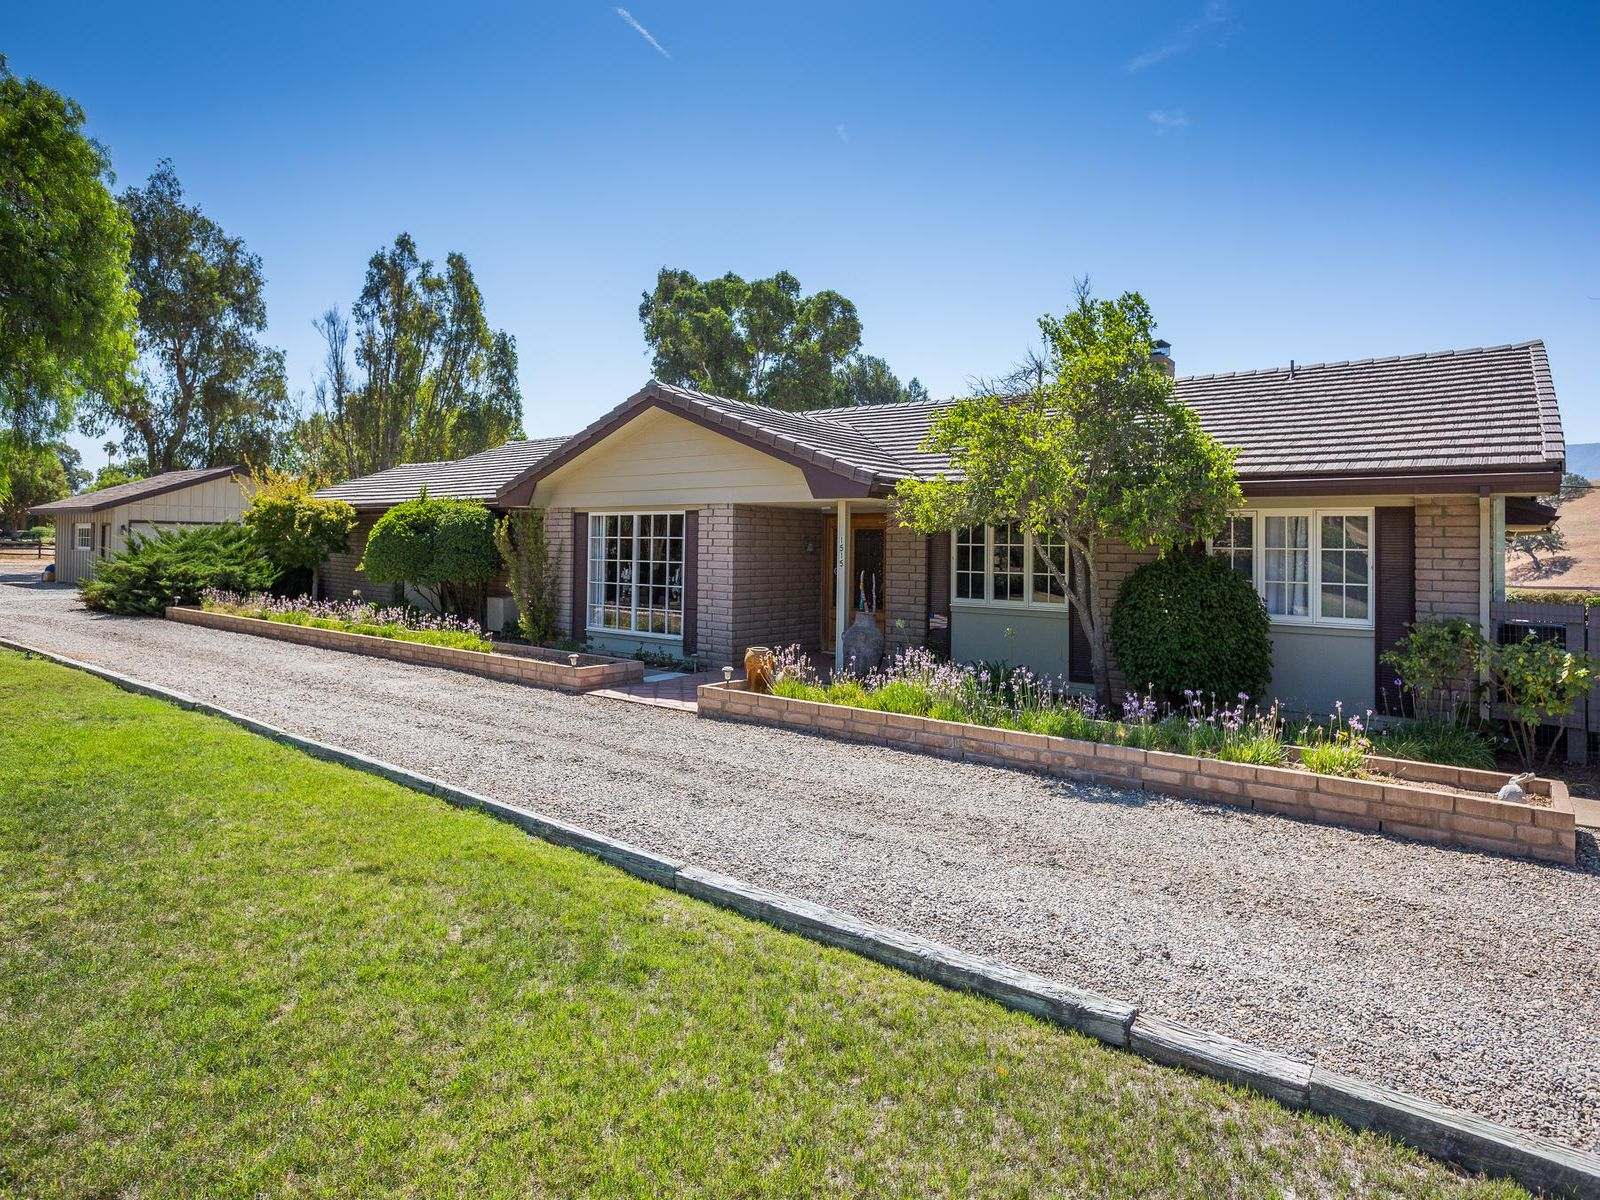 Rancho Estates Charmer, Santa Ynez CA Single Family Home - Santa Ynez Real Estate